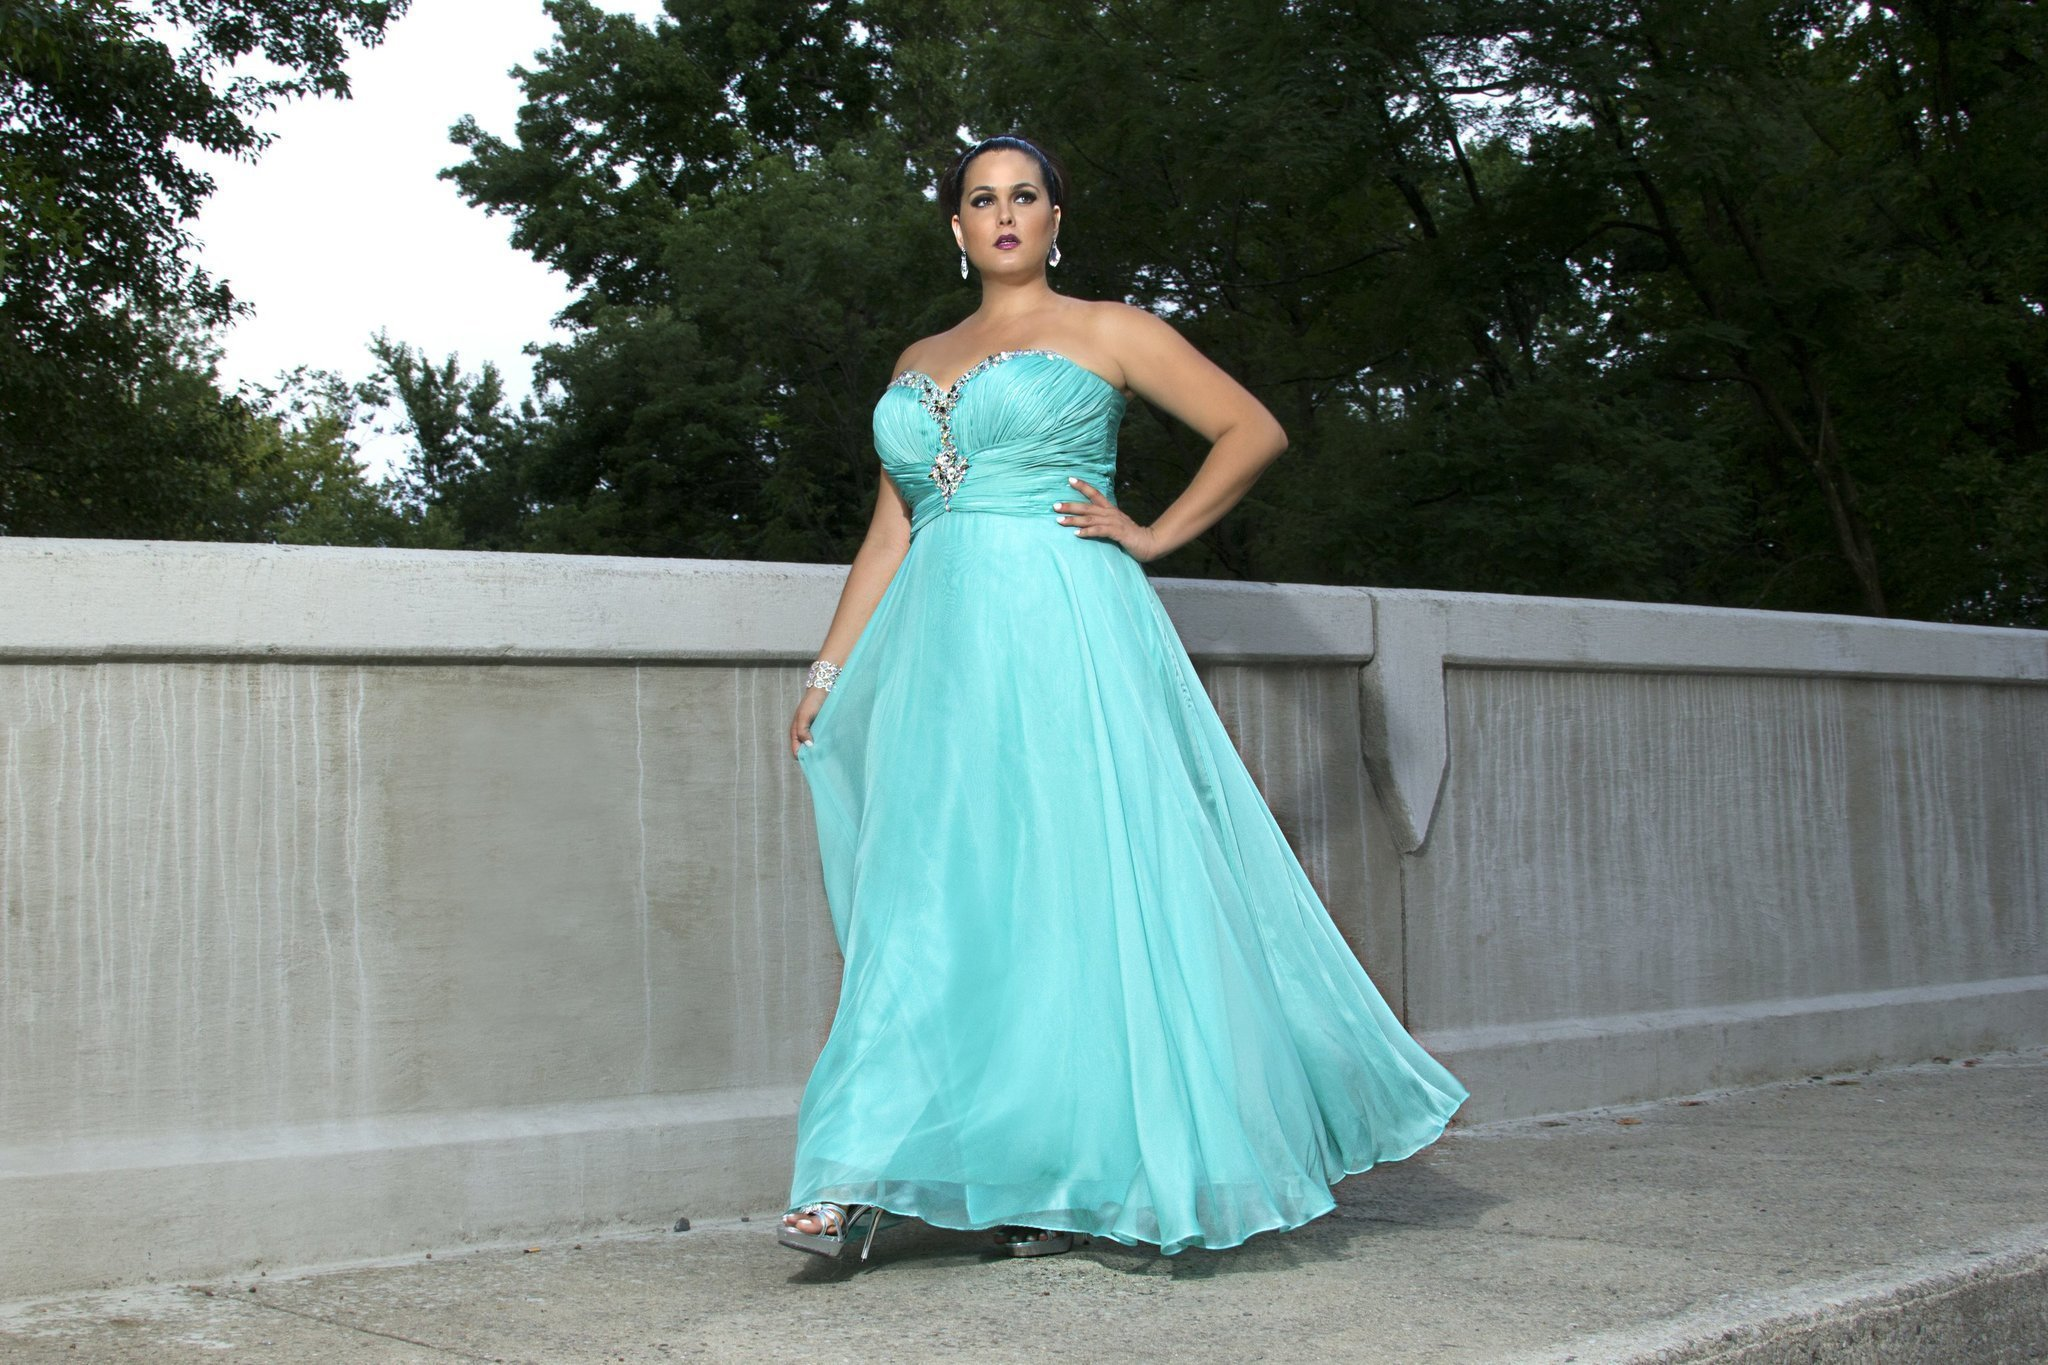 Prom Dress Shopping Perilous For Plus Size Girls The San Diego